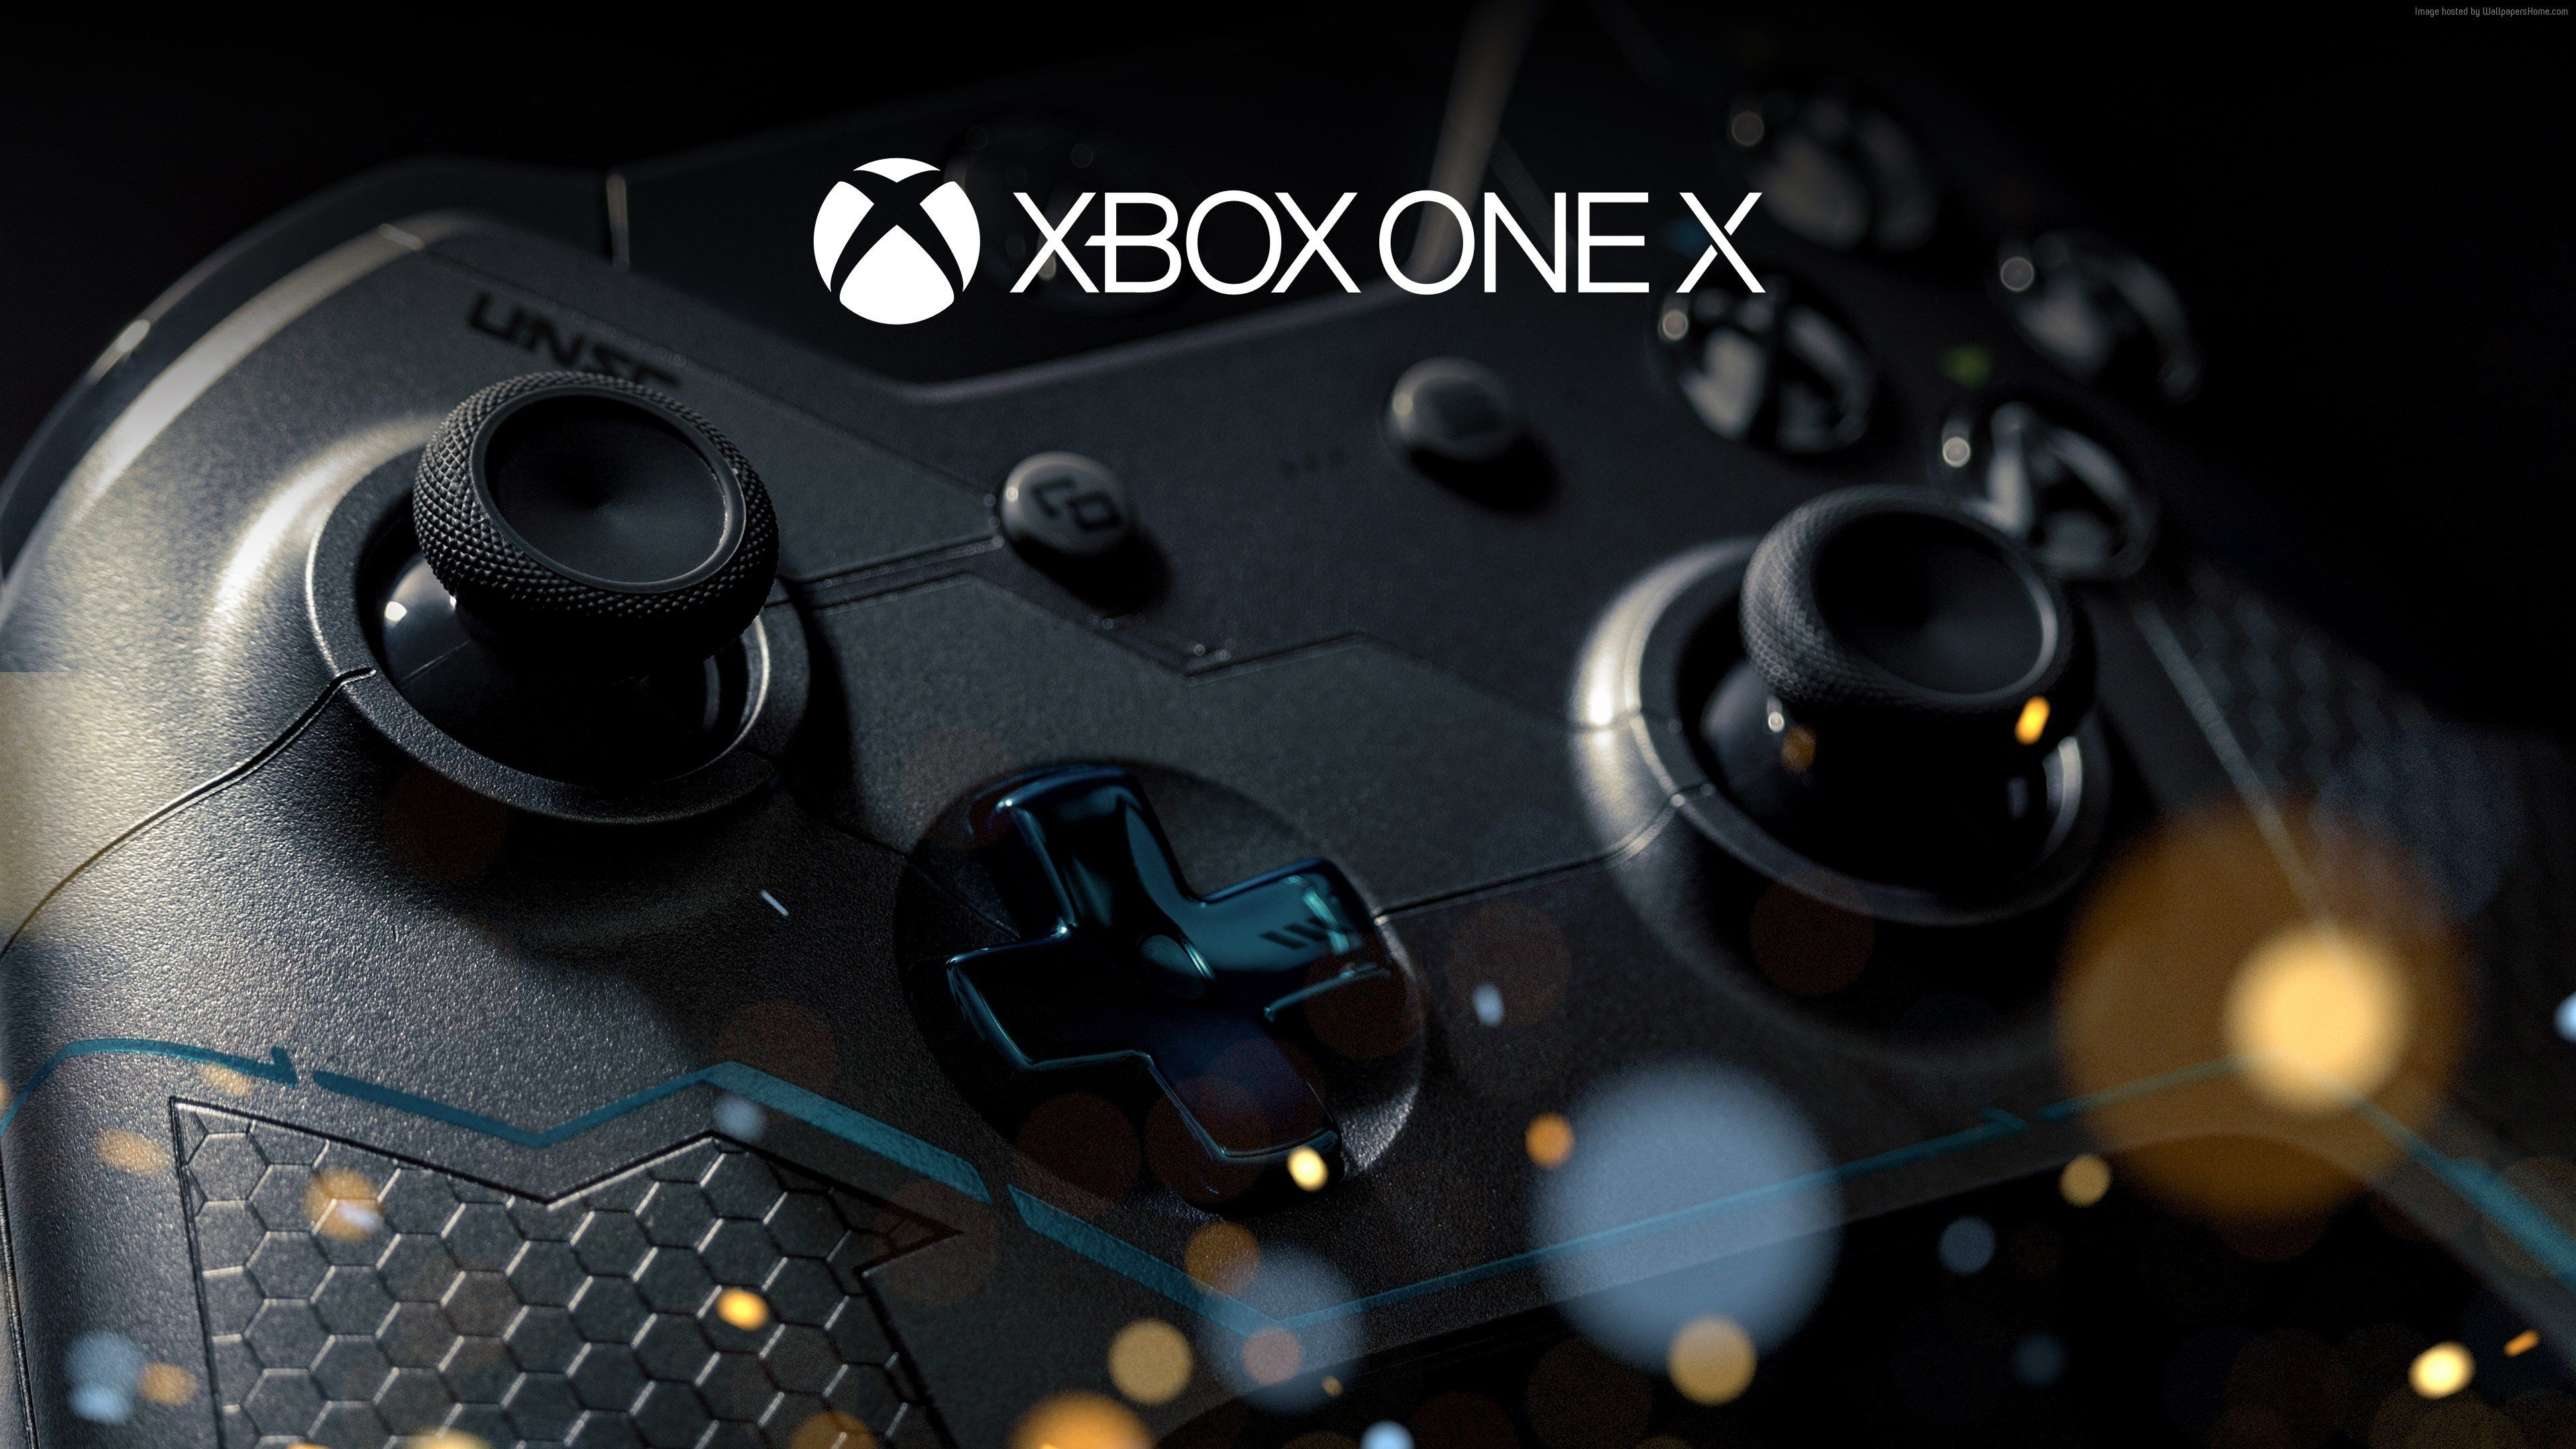 Xbox One X Controller, HD Computer, 4k Wallpapers, Image